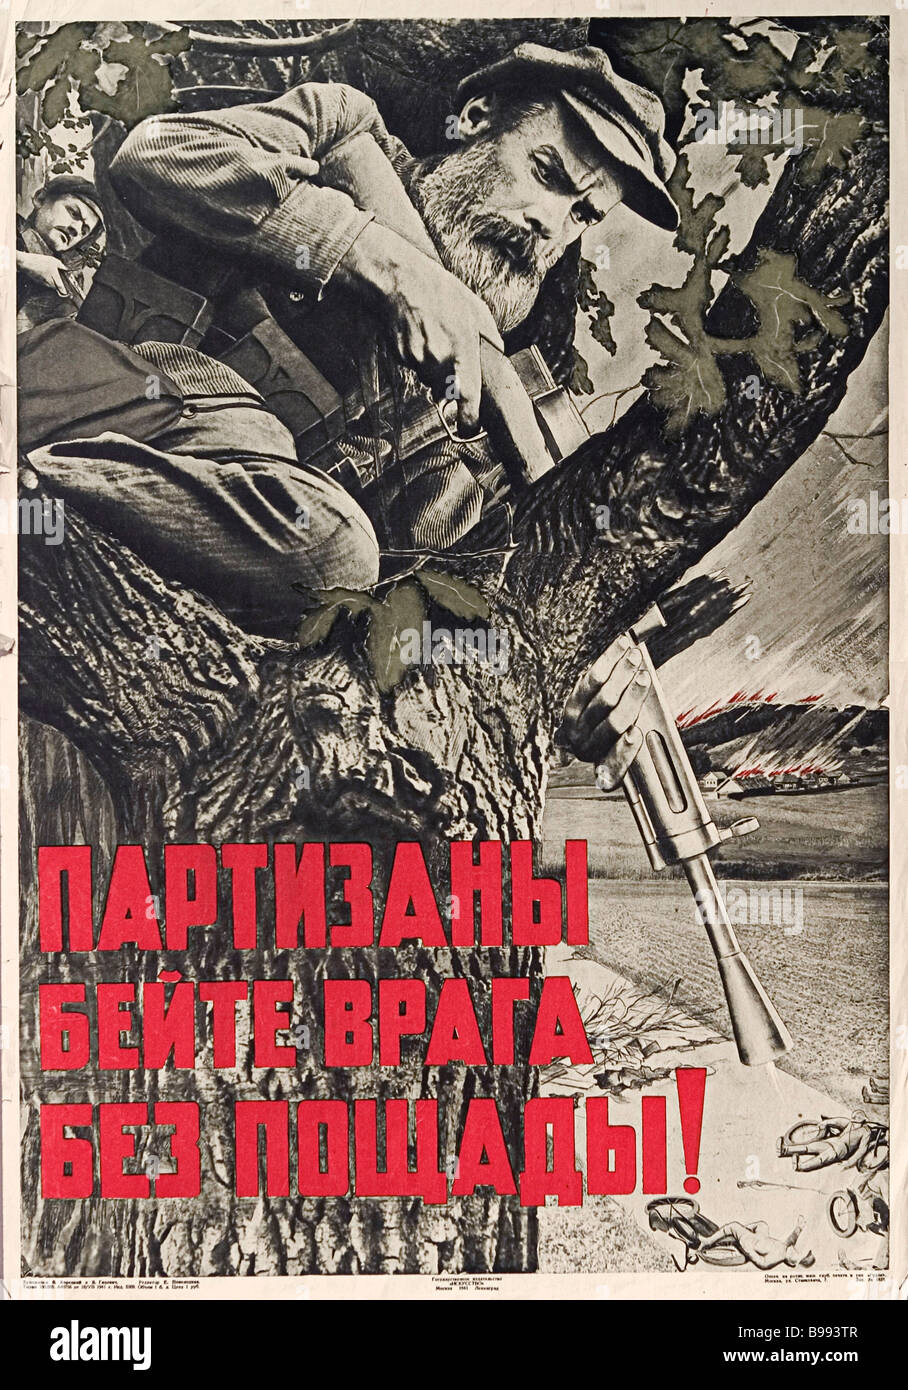 Koretsky s and Gitsevich s poster Partisans Destroy Enemy Without Mercy 1941 - Stock Image